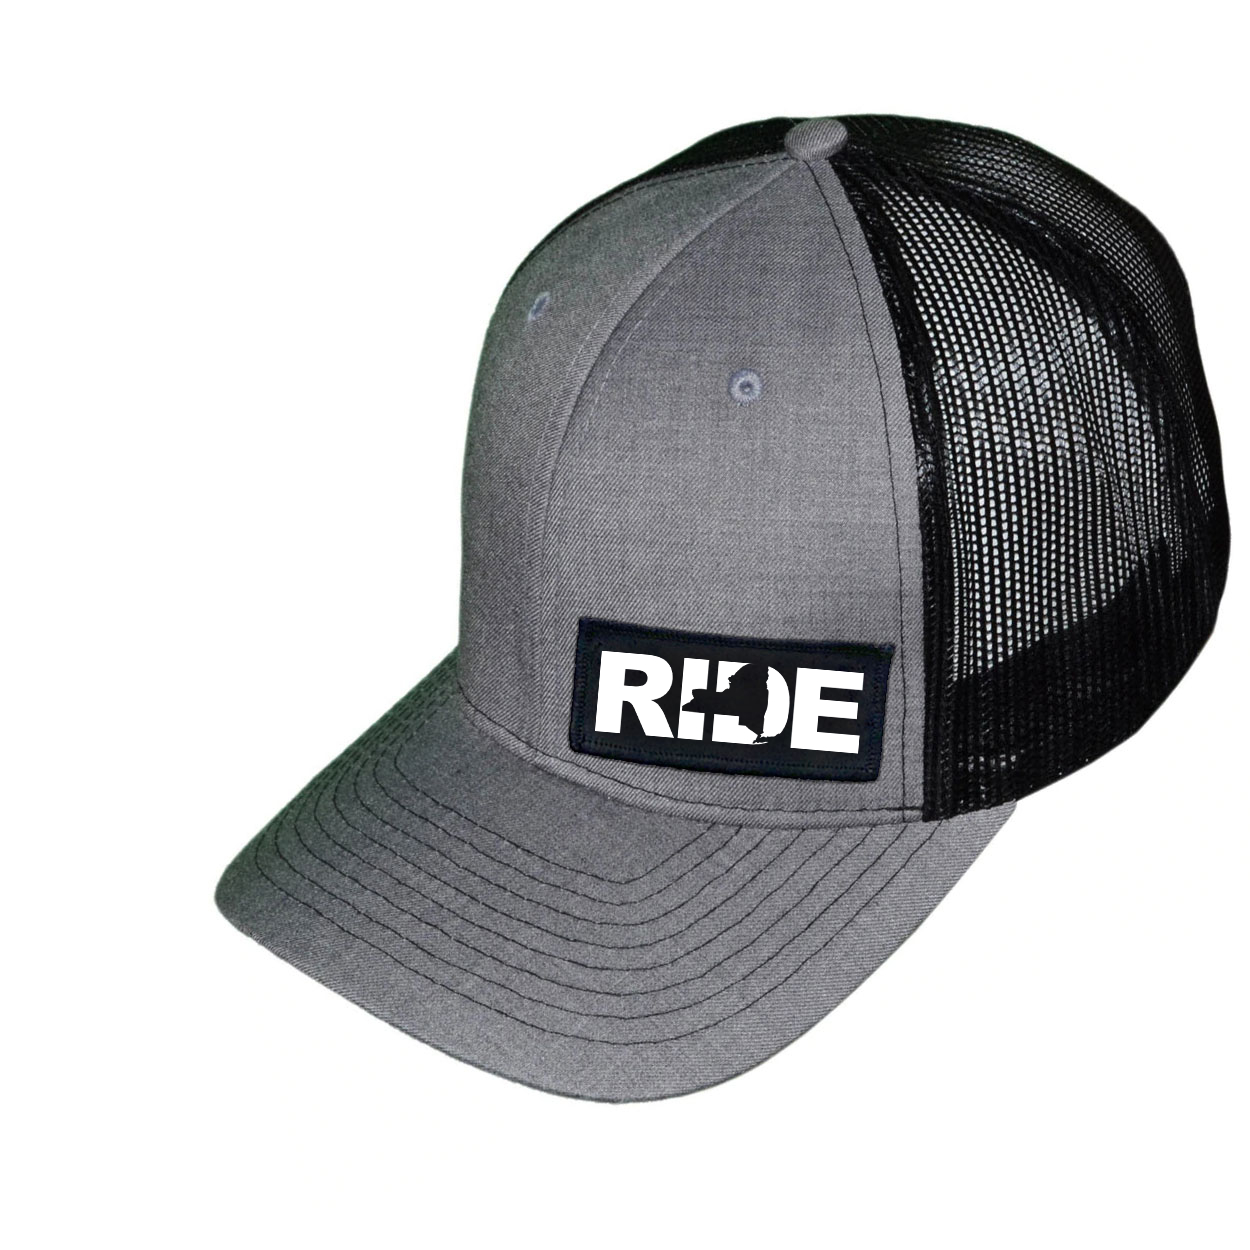 Ride New York Night Out Woven Patch Snapback Trucker Hat Heather Gray/Black (White Logo)